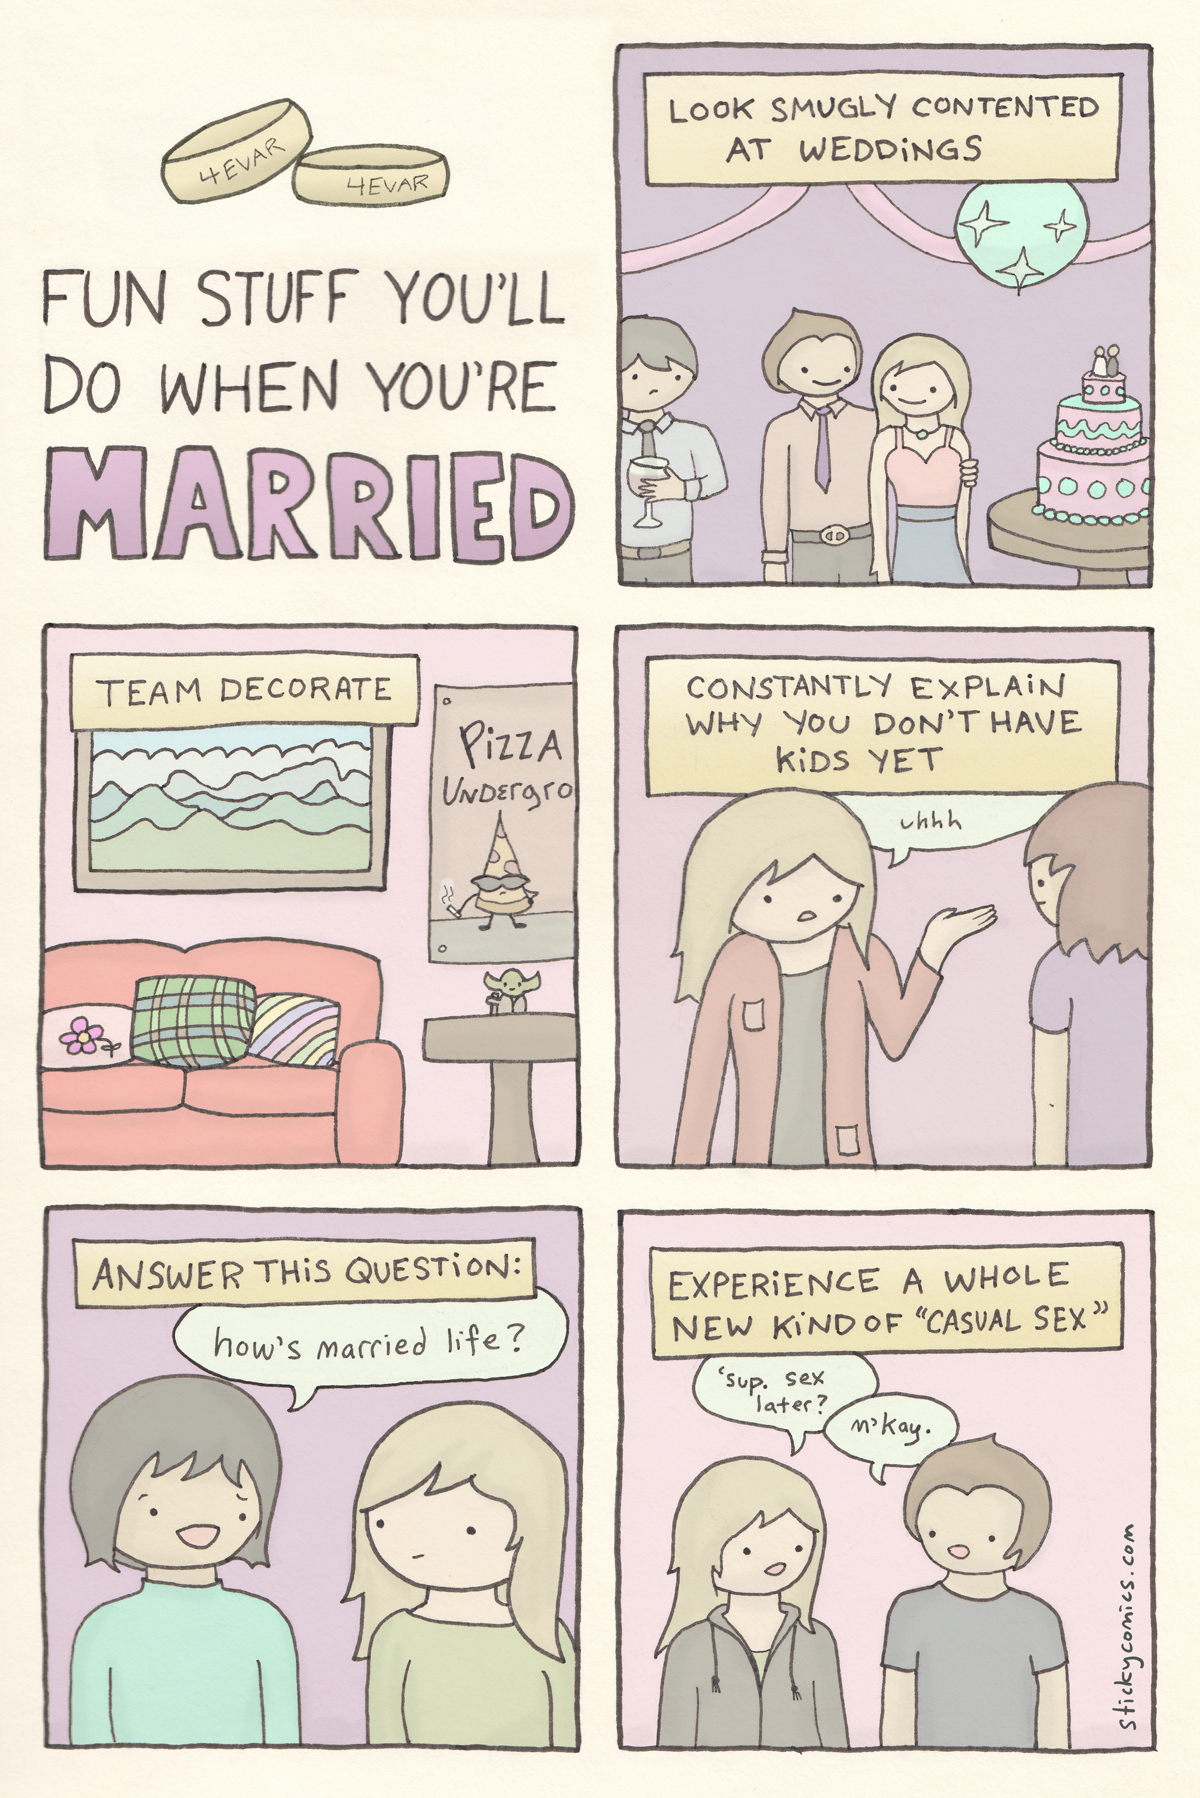 when you're married